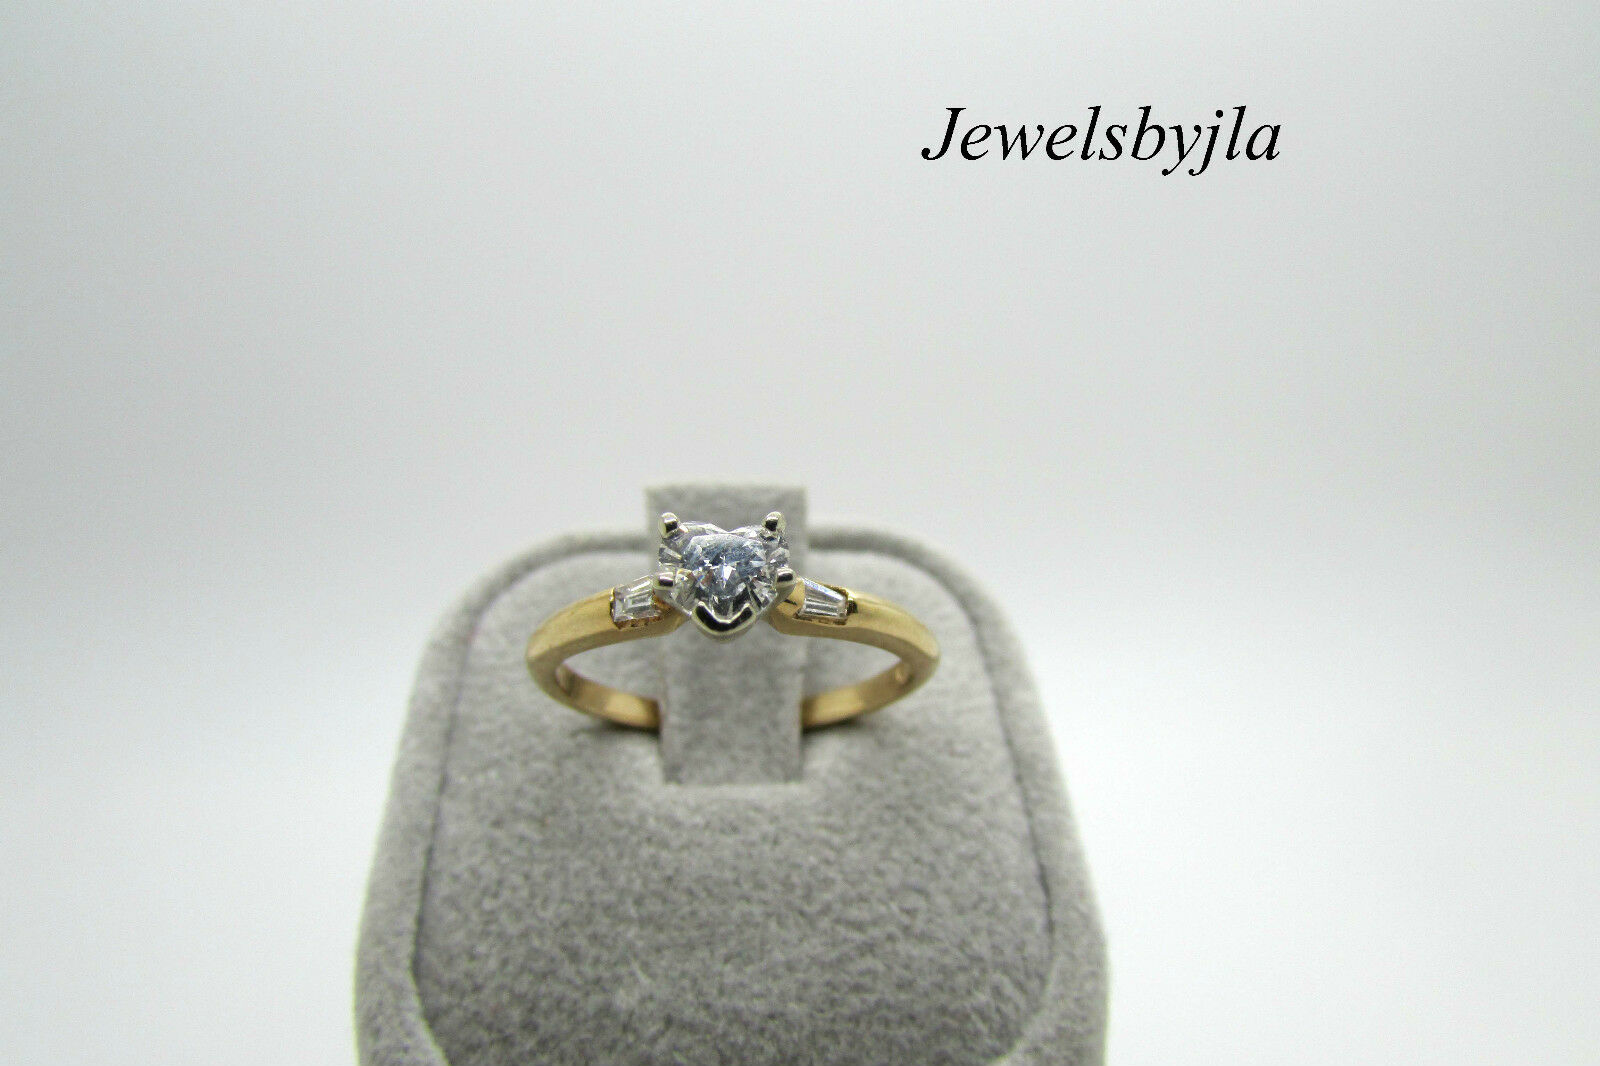 14K Yellow gold Pretty Heart Shaped Diamond Engagement Ring 0.32 cts Size 5